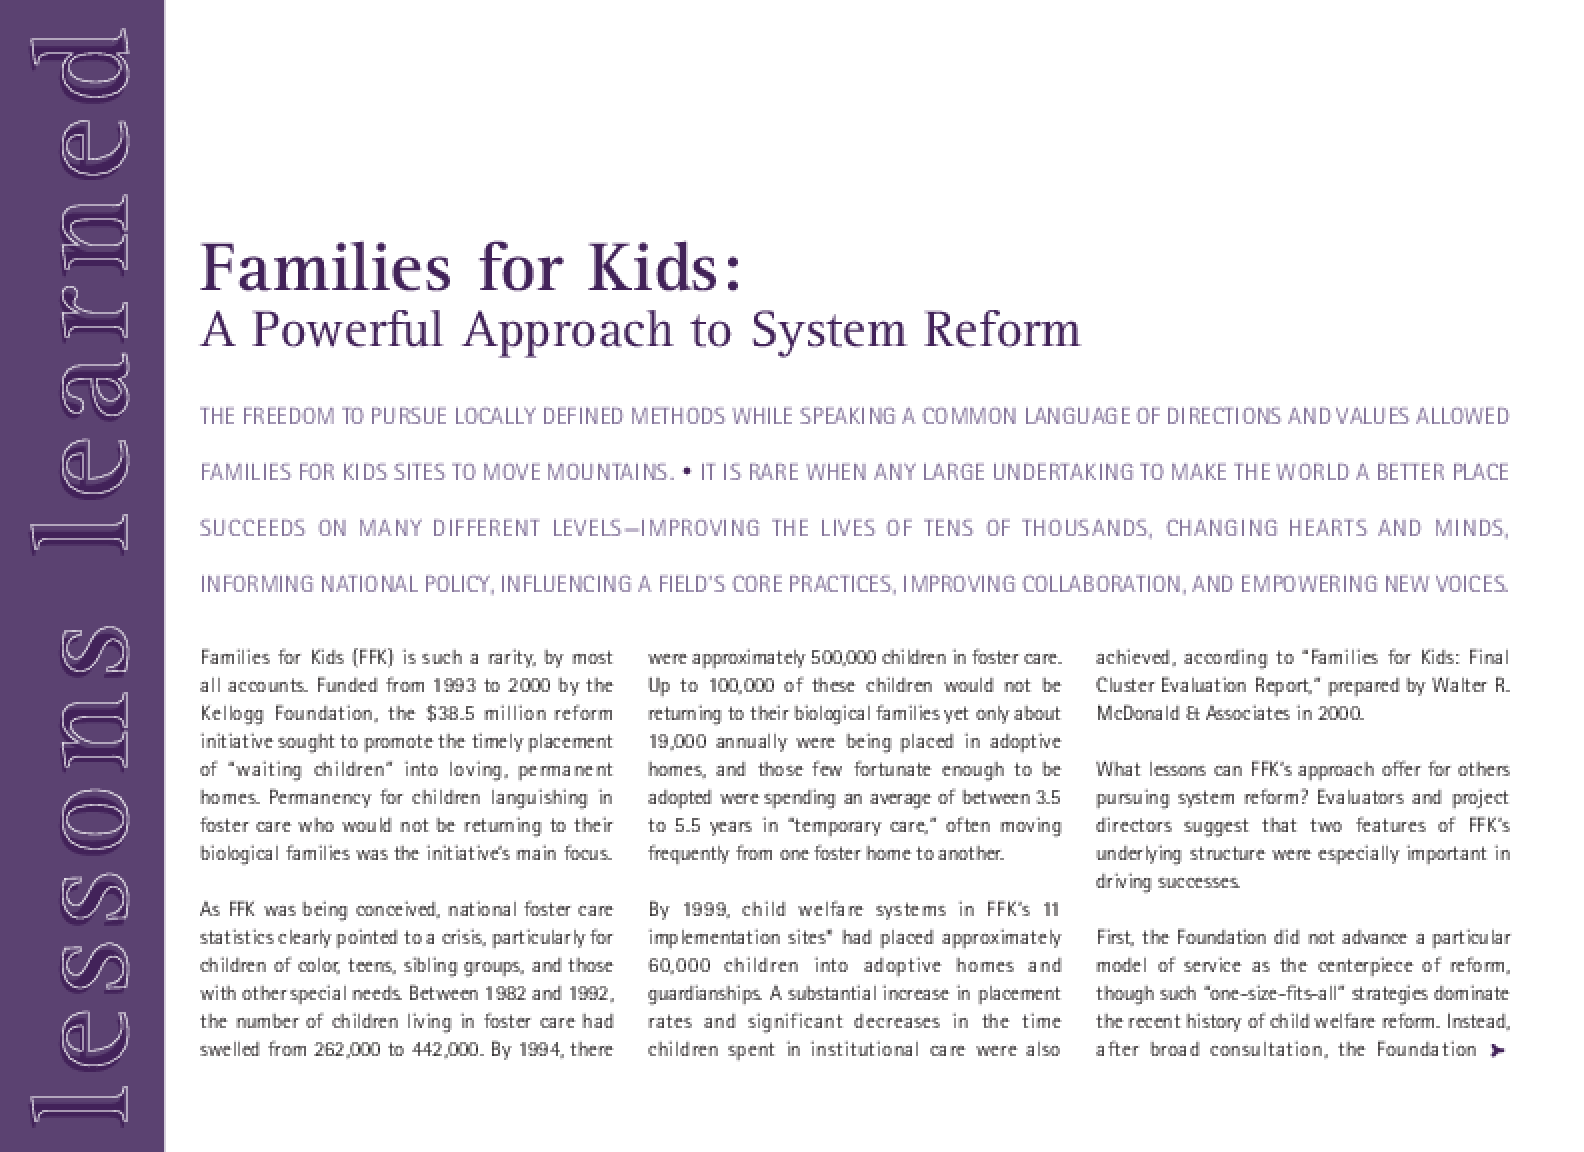 Families for Kids: A Powerful Approach to System Reform